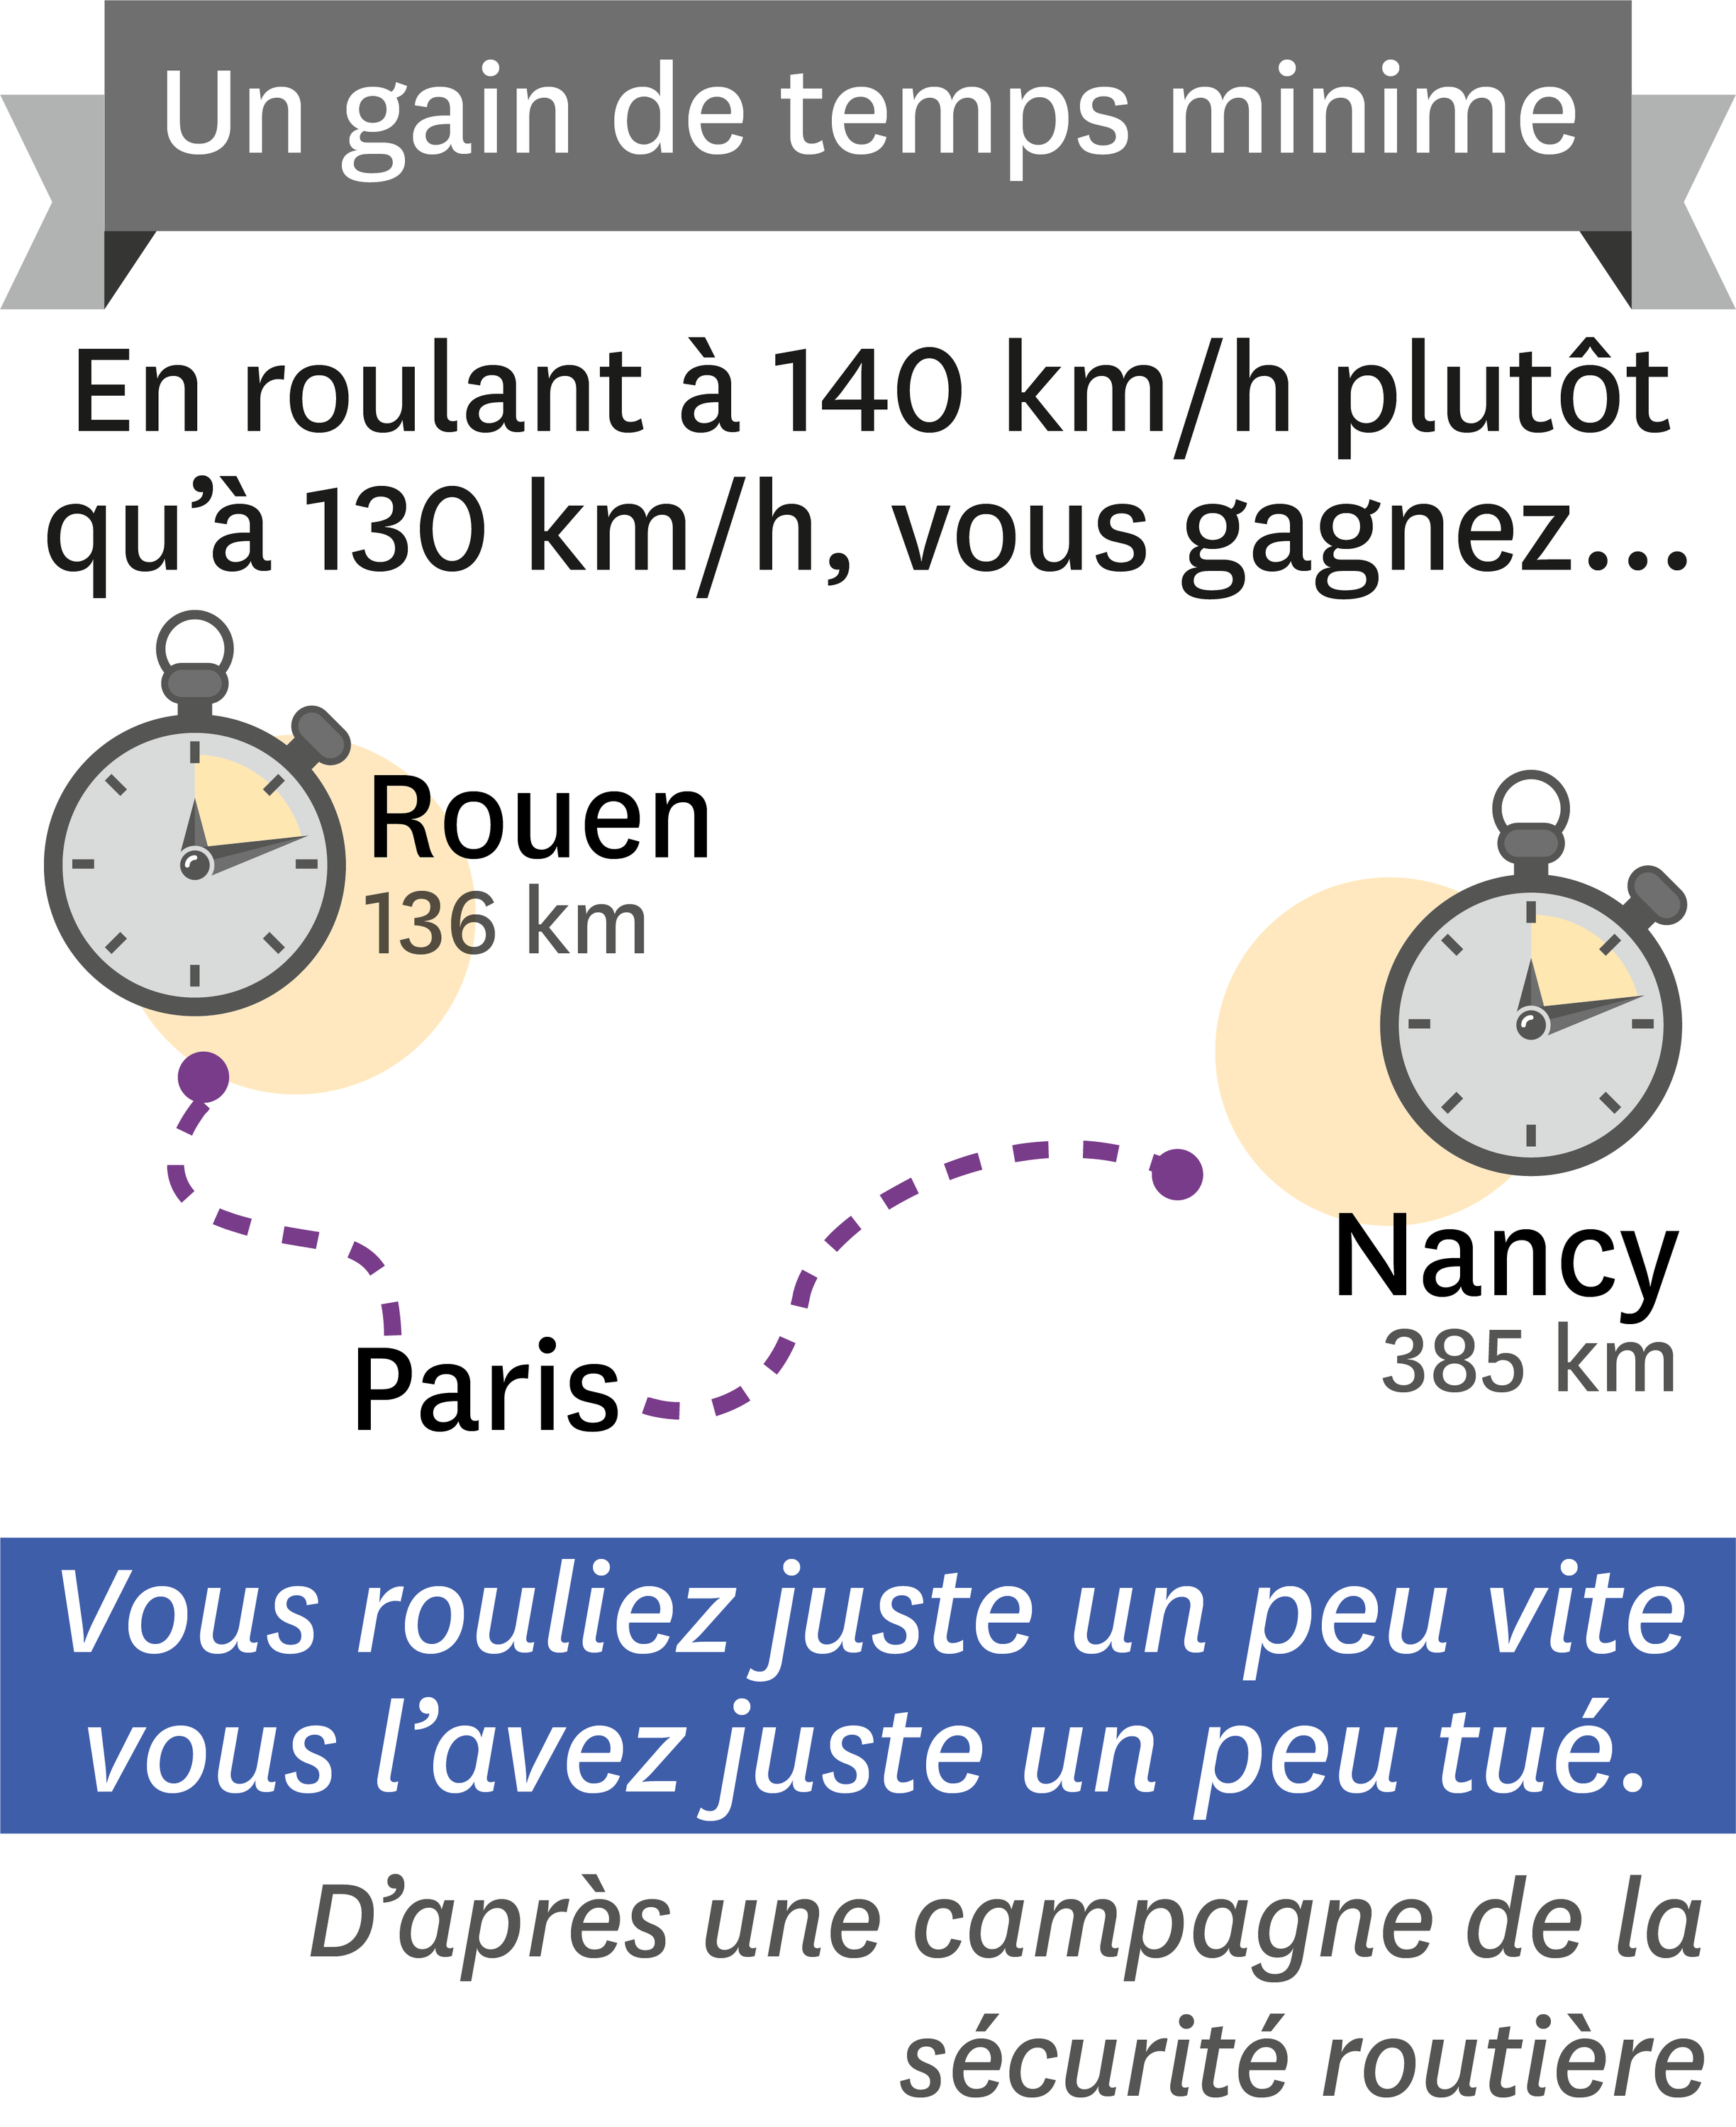 Rouen - Paris - Nancy.